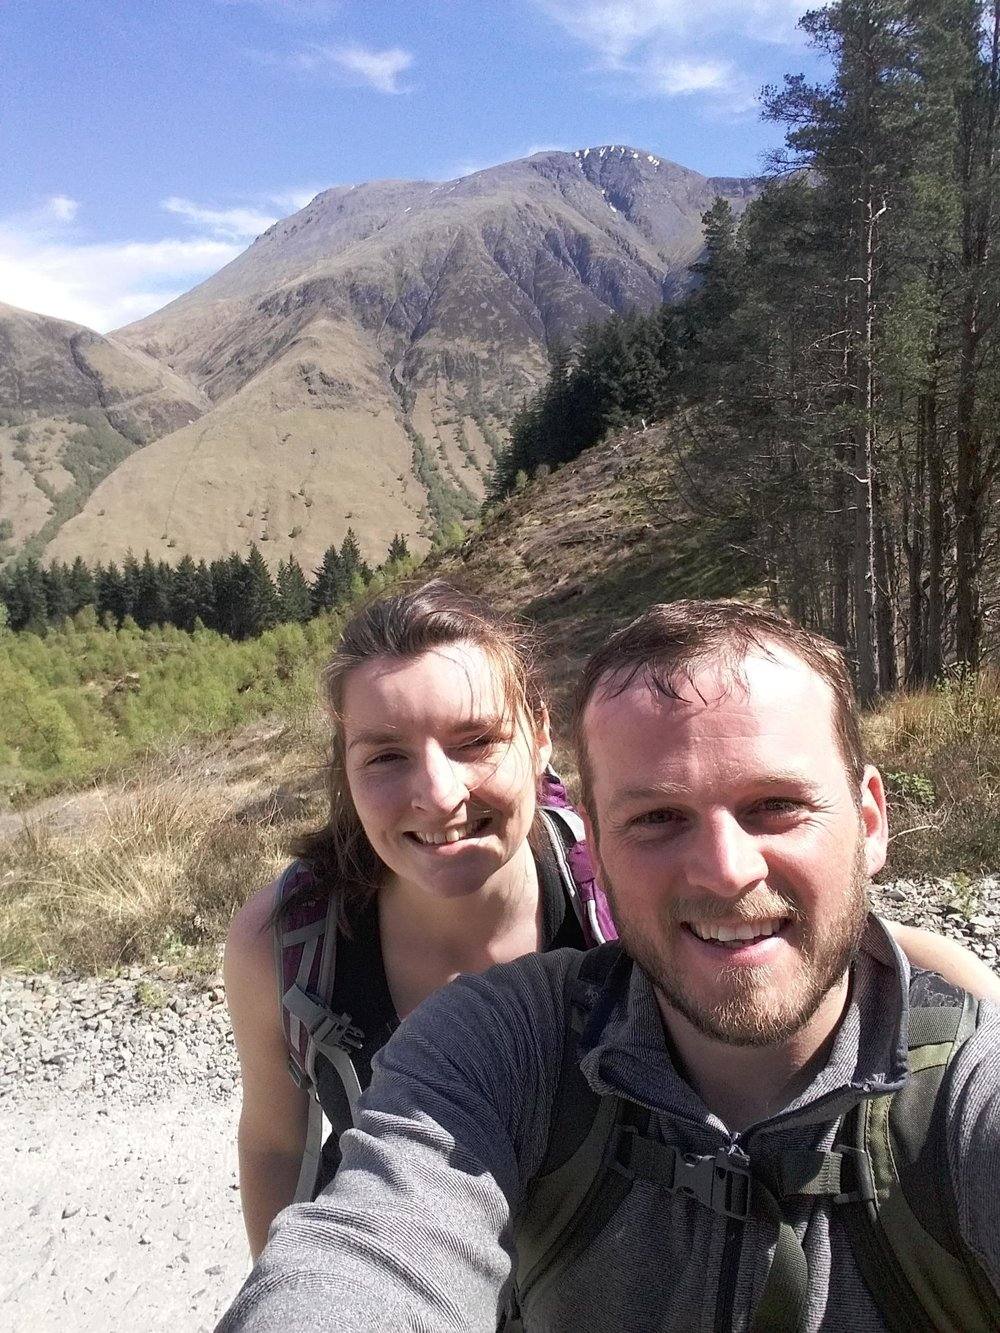 kevin and amy hiking the west highland way.jpg